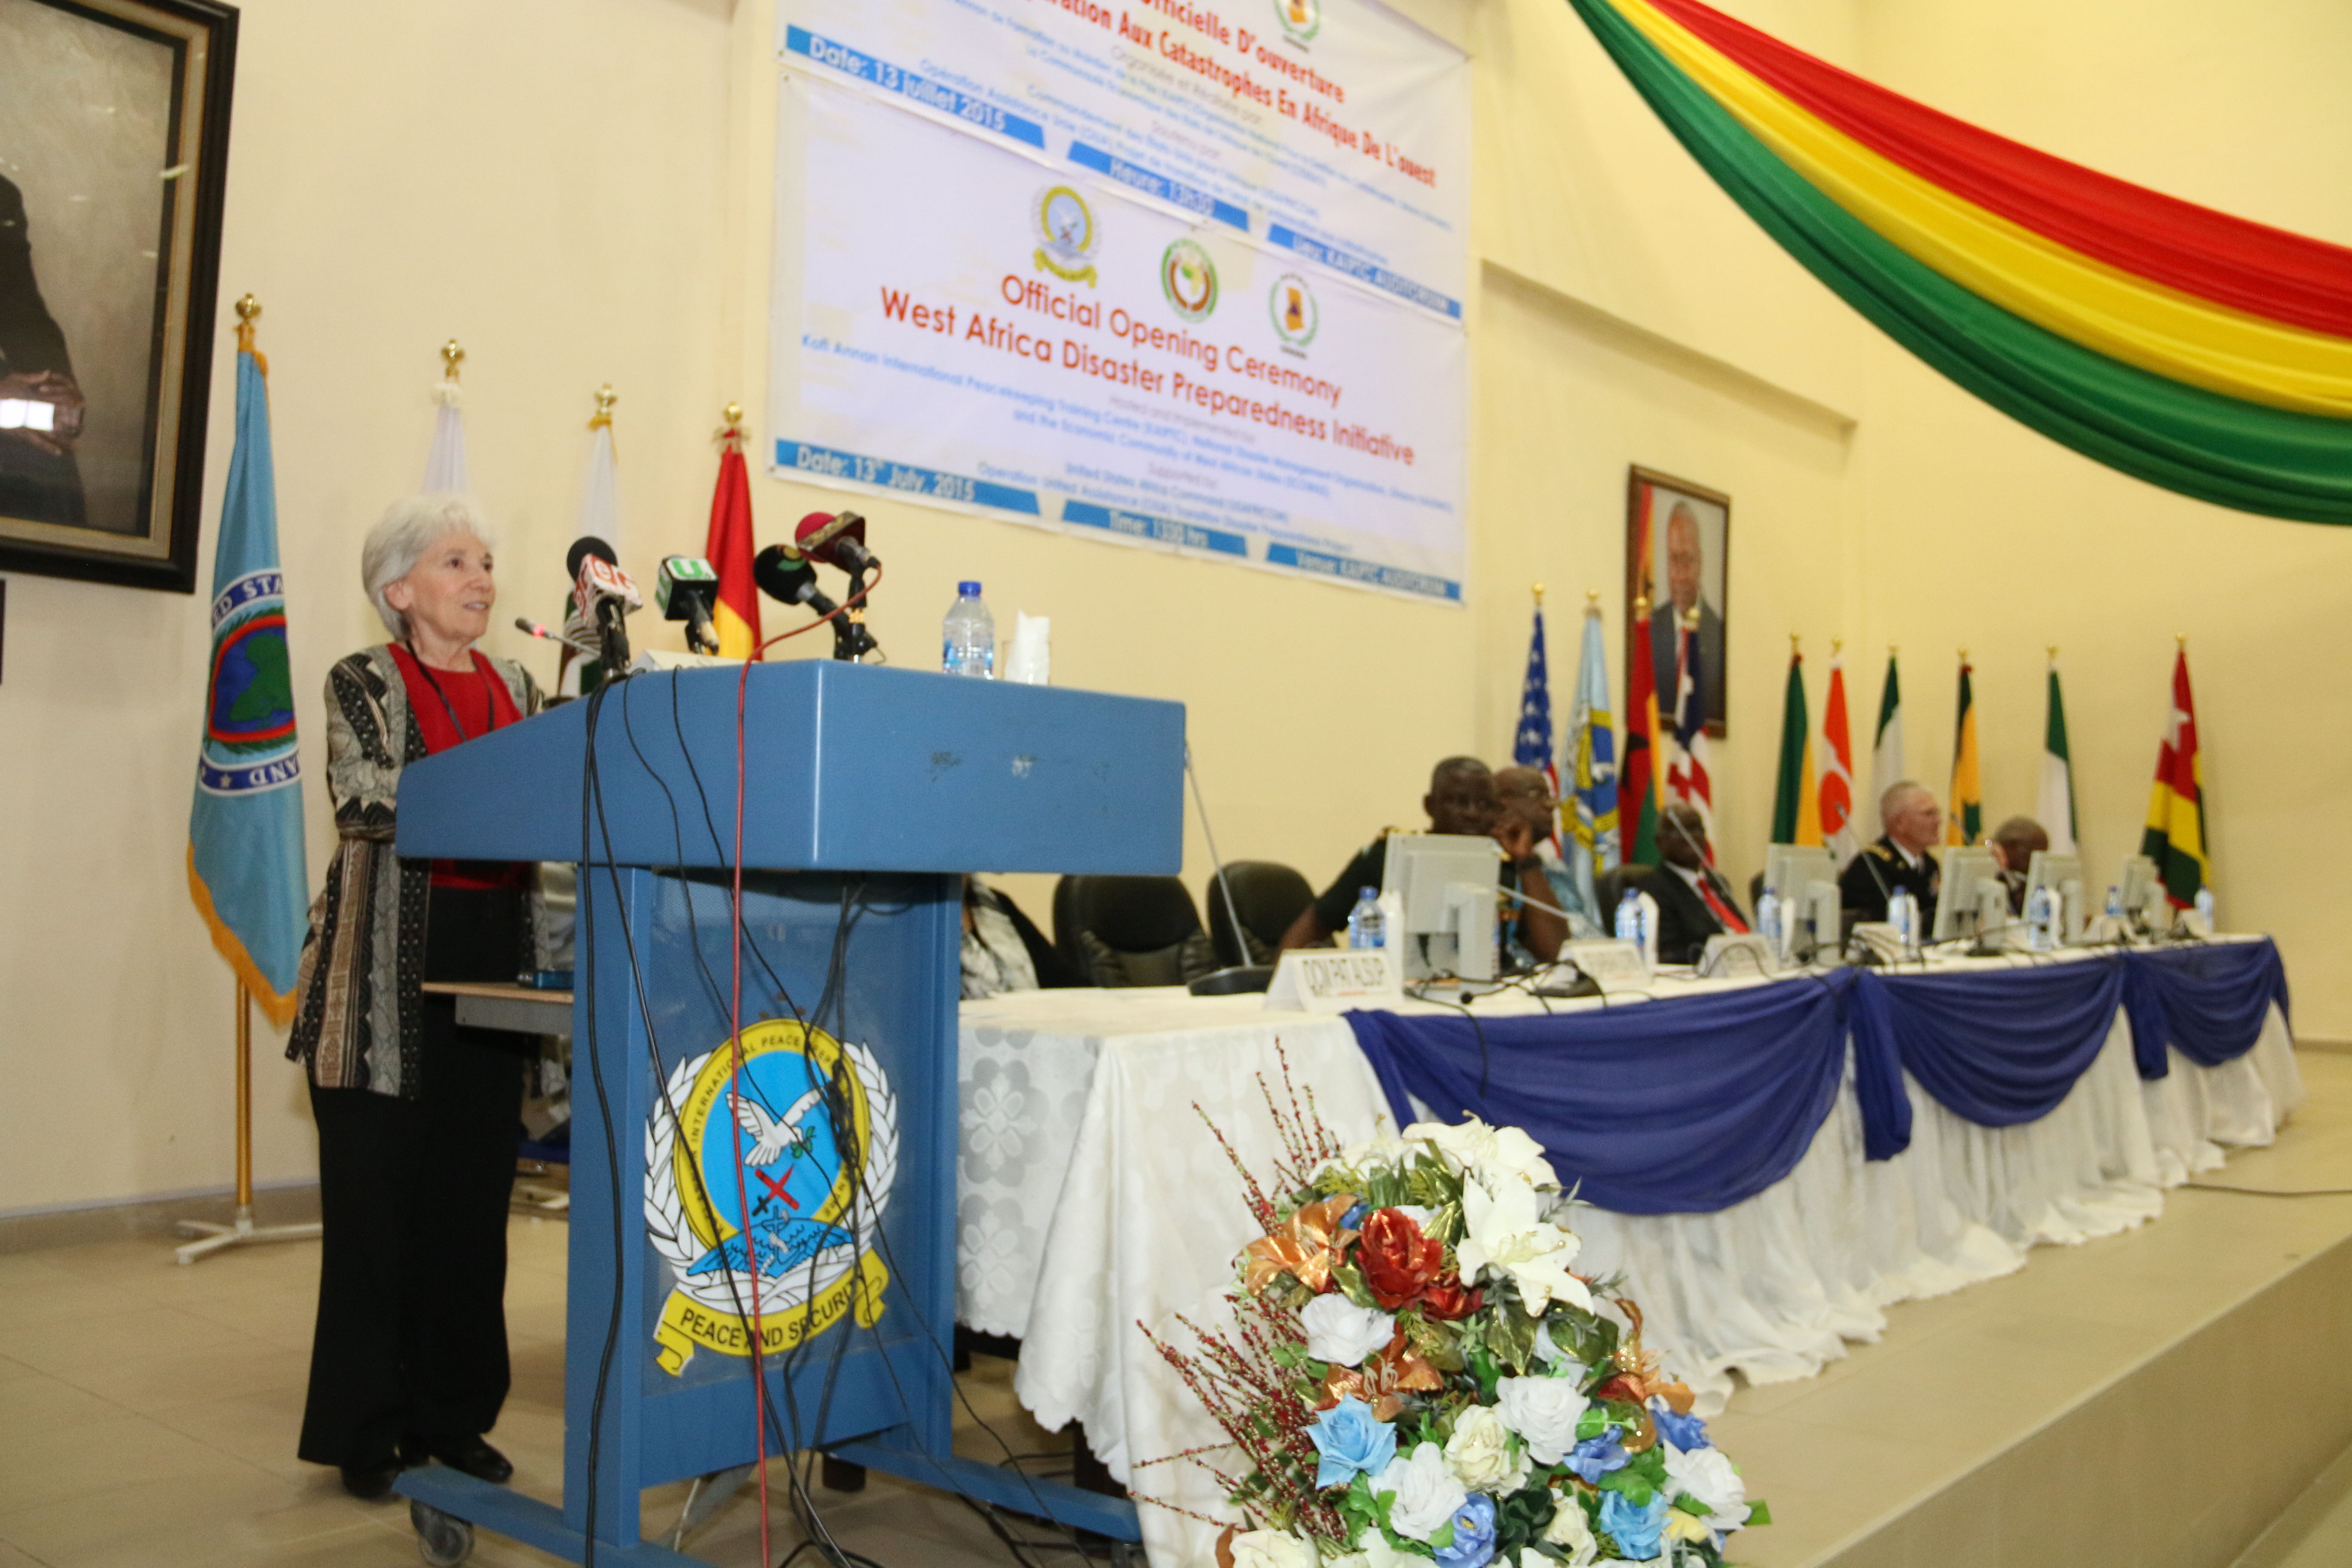 Dr. Barbara Sotirin, deputy director for programs at U.S. Africa Command, provides remarks during the opening ceremony for the the West Africa Disaster Preparedness Initiative at the Kofi Annan International Peacekeeping Training Center in Accra, Ghana July 13, 2015.